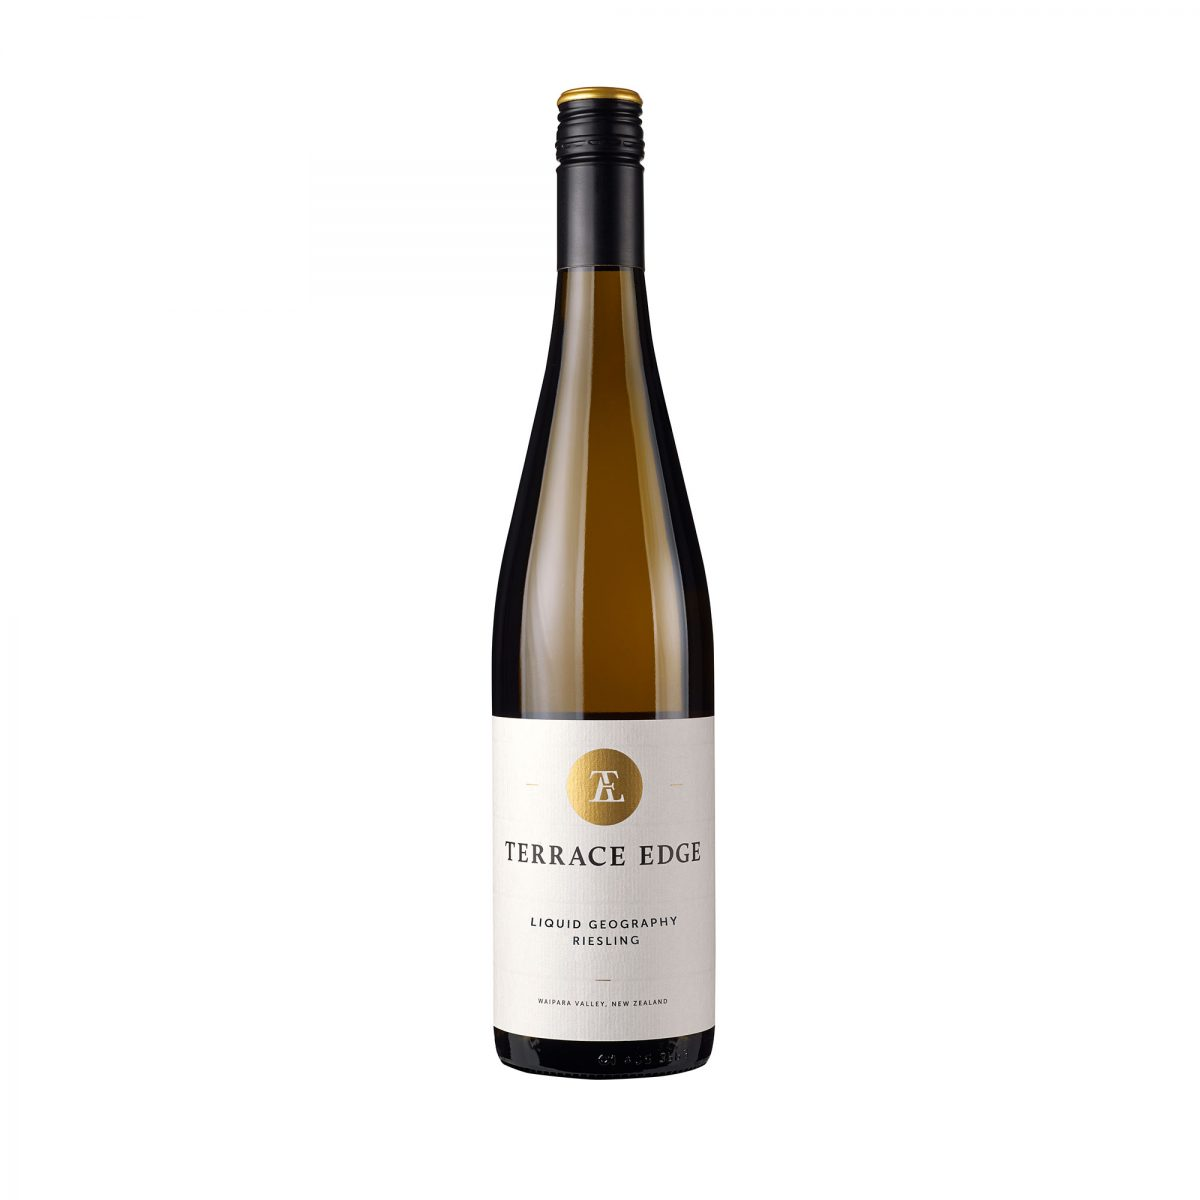 Terrace Edge Liquid Geography Riesling 2018 - 6 pack